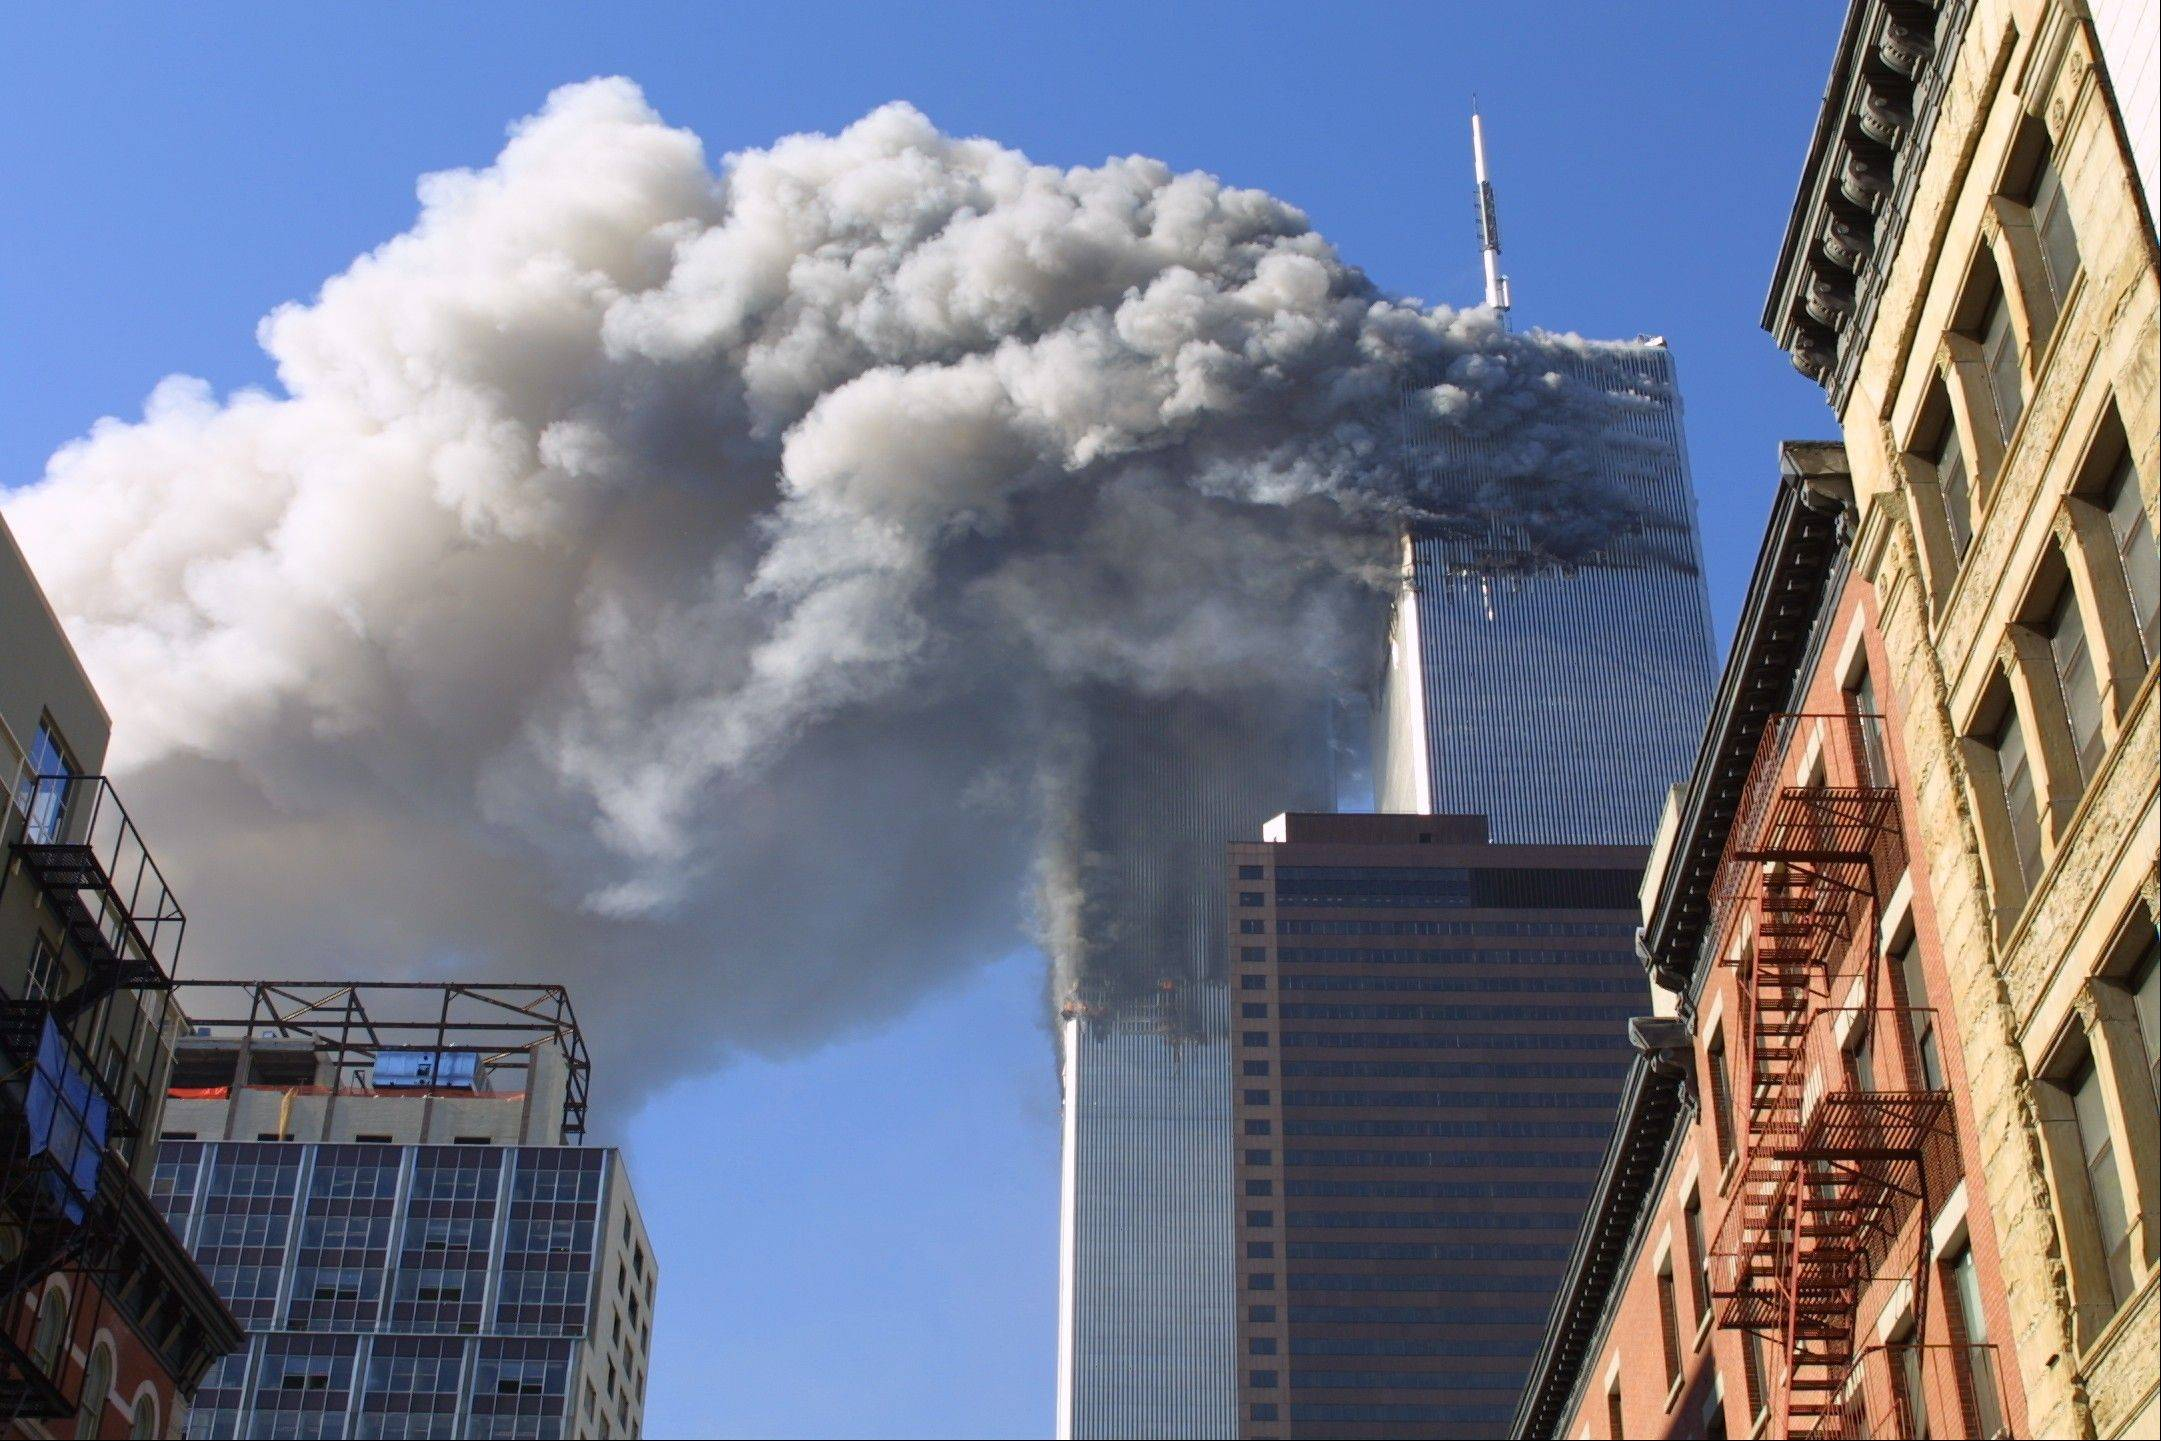 This photo taken on Sept. 11, 2001, brings back vivid memories for most Americans. But most high school juniors taking U.S. history this year don't share those memories. They were just kindergartners when our nation was attacked.